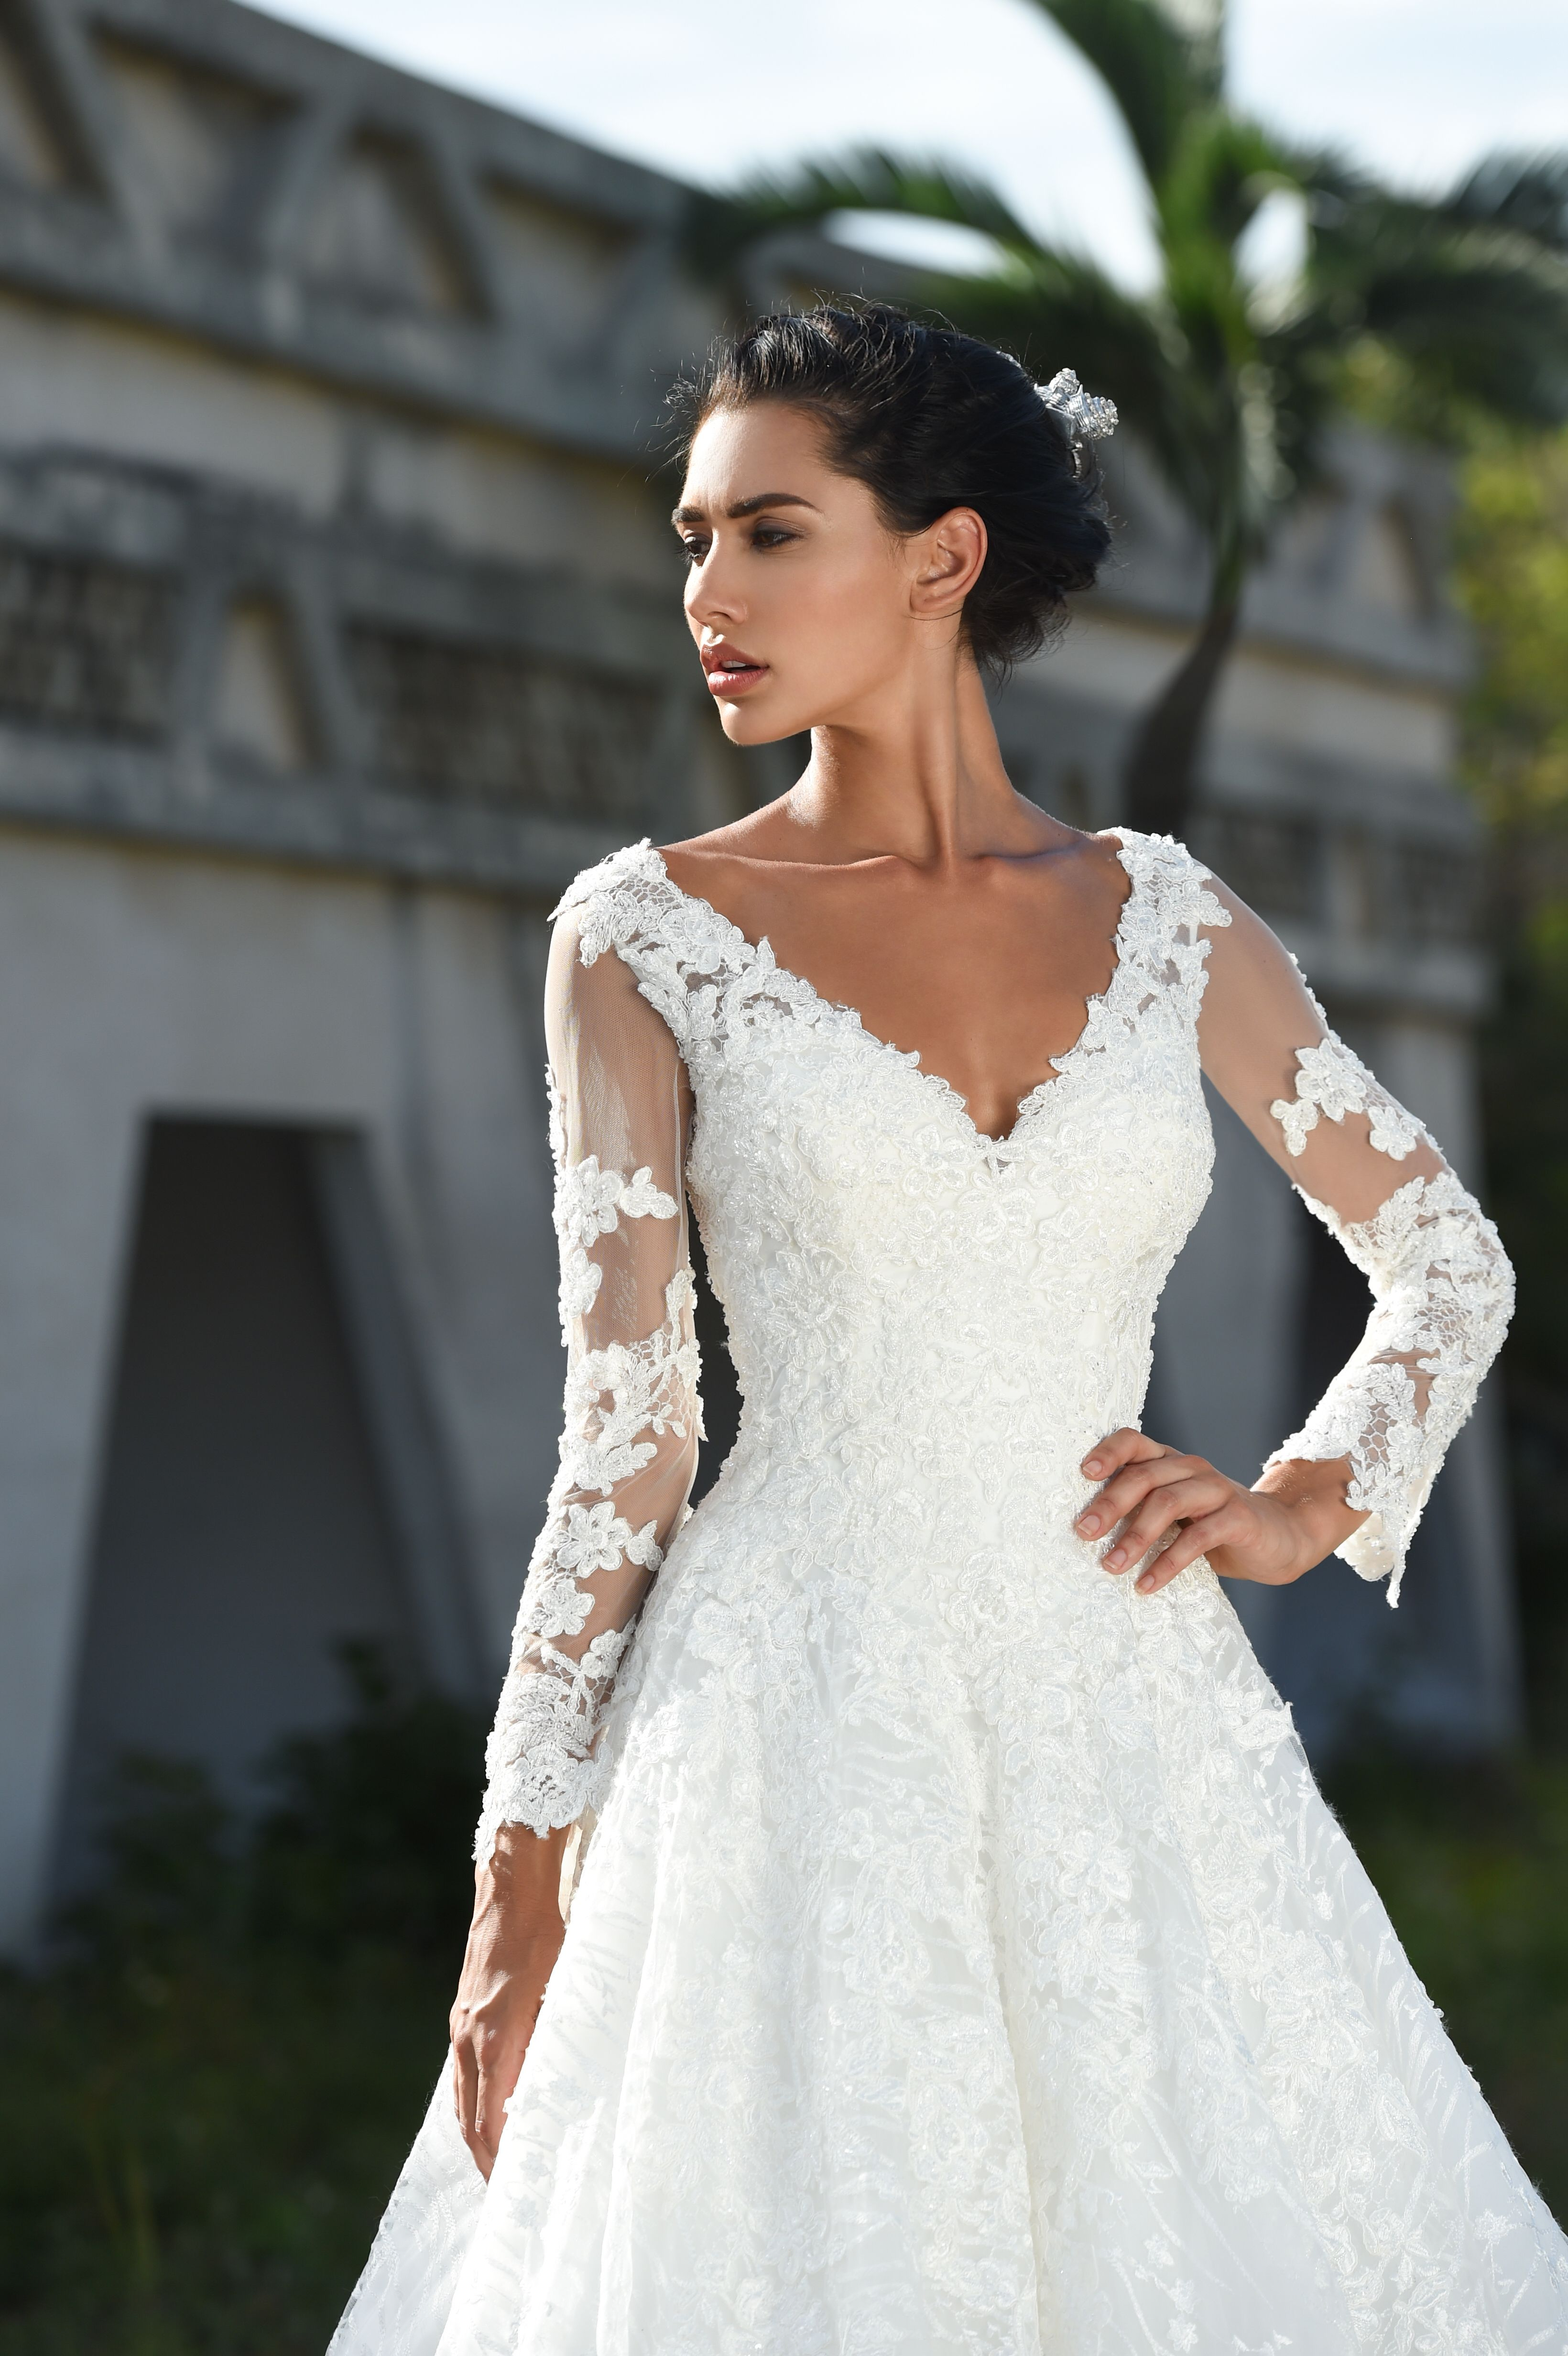 Dando London Couture 2018 Bridal Gown Collection Fantasia Ball With Deep V Neckline And Full Length Illusion Lace Sleeves